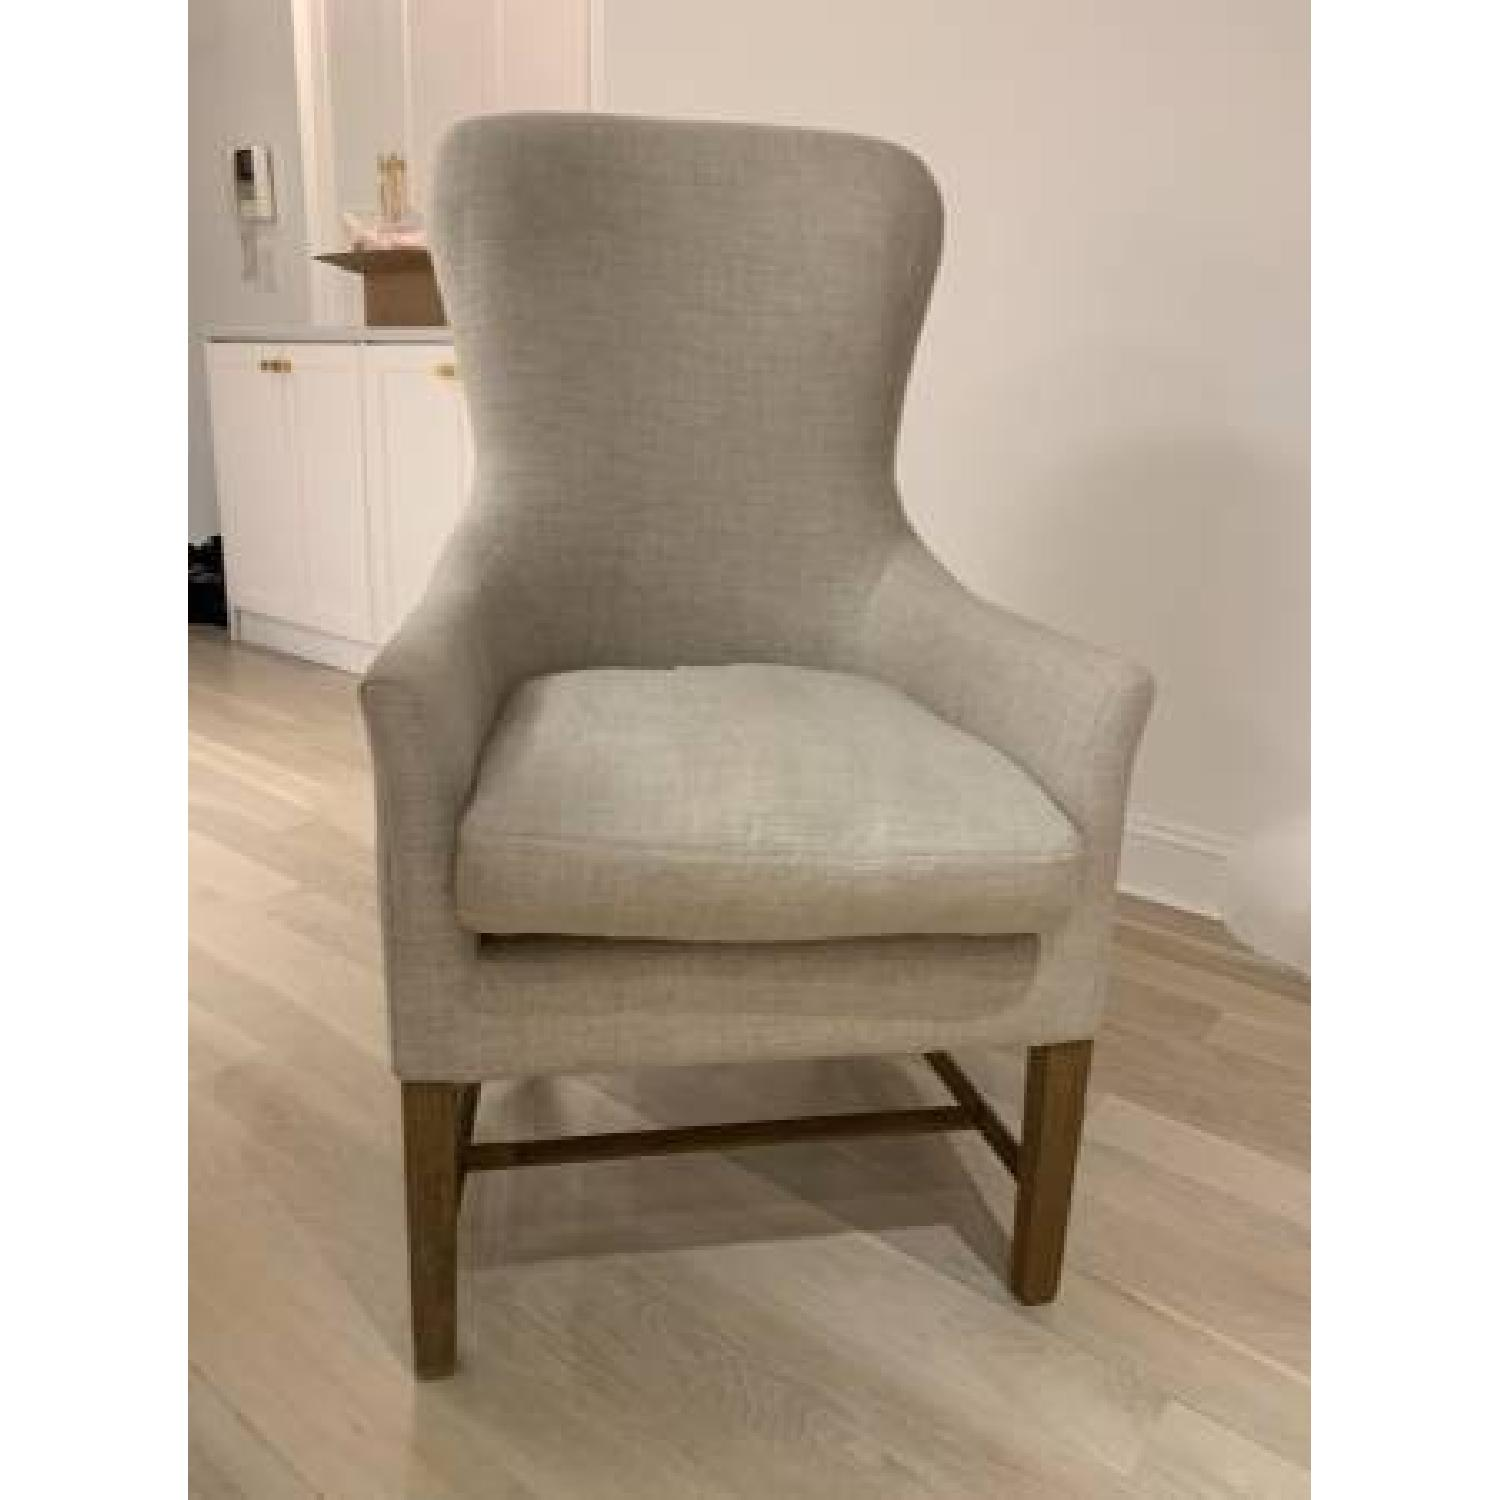 Restoration Hardware Linen Upholstered Accent Chair-0